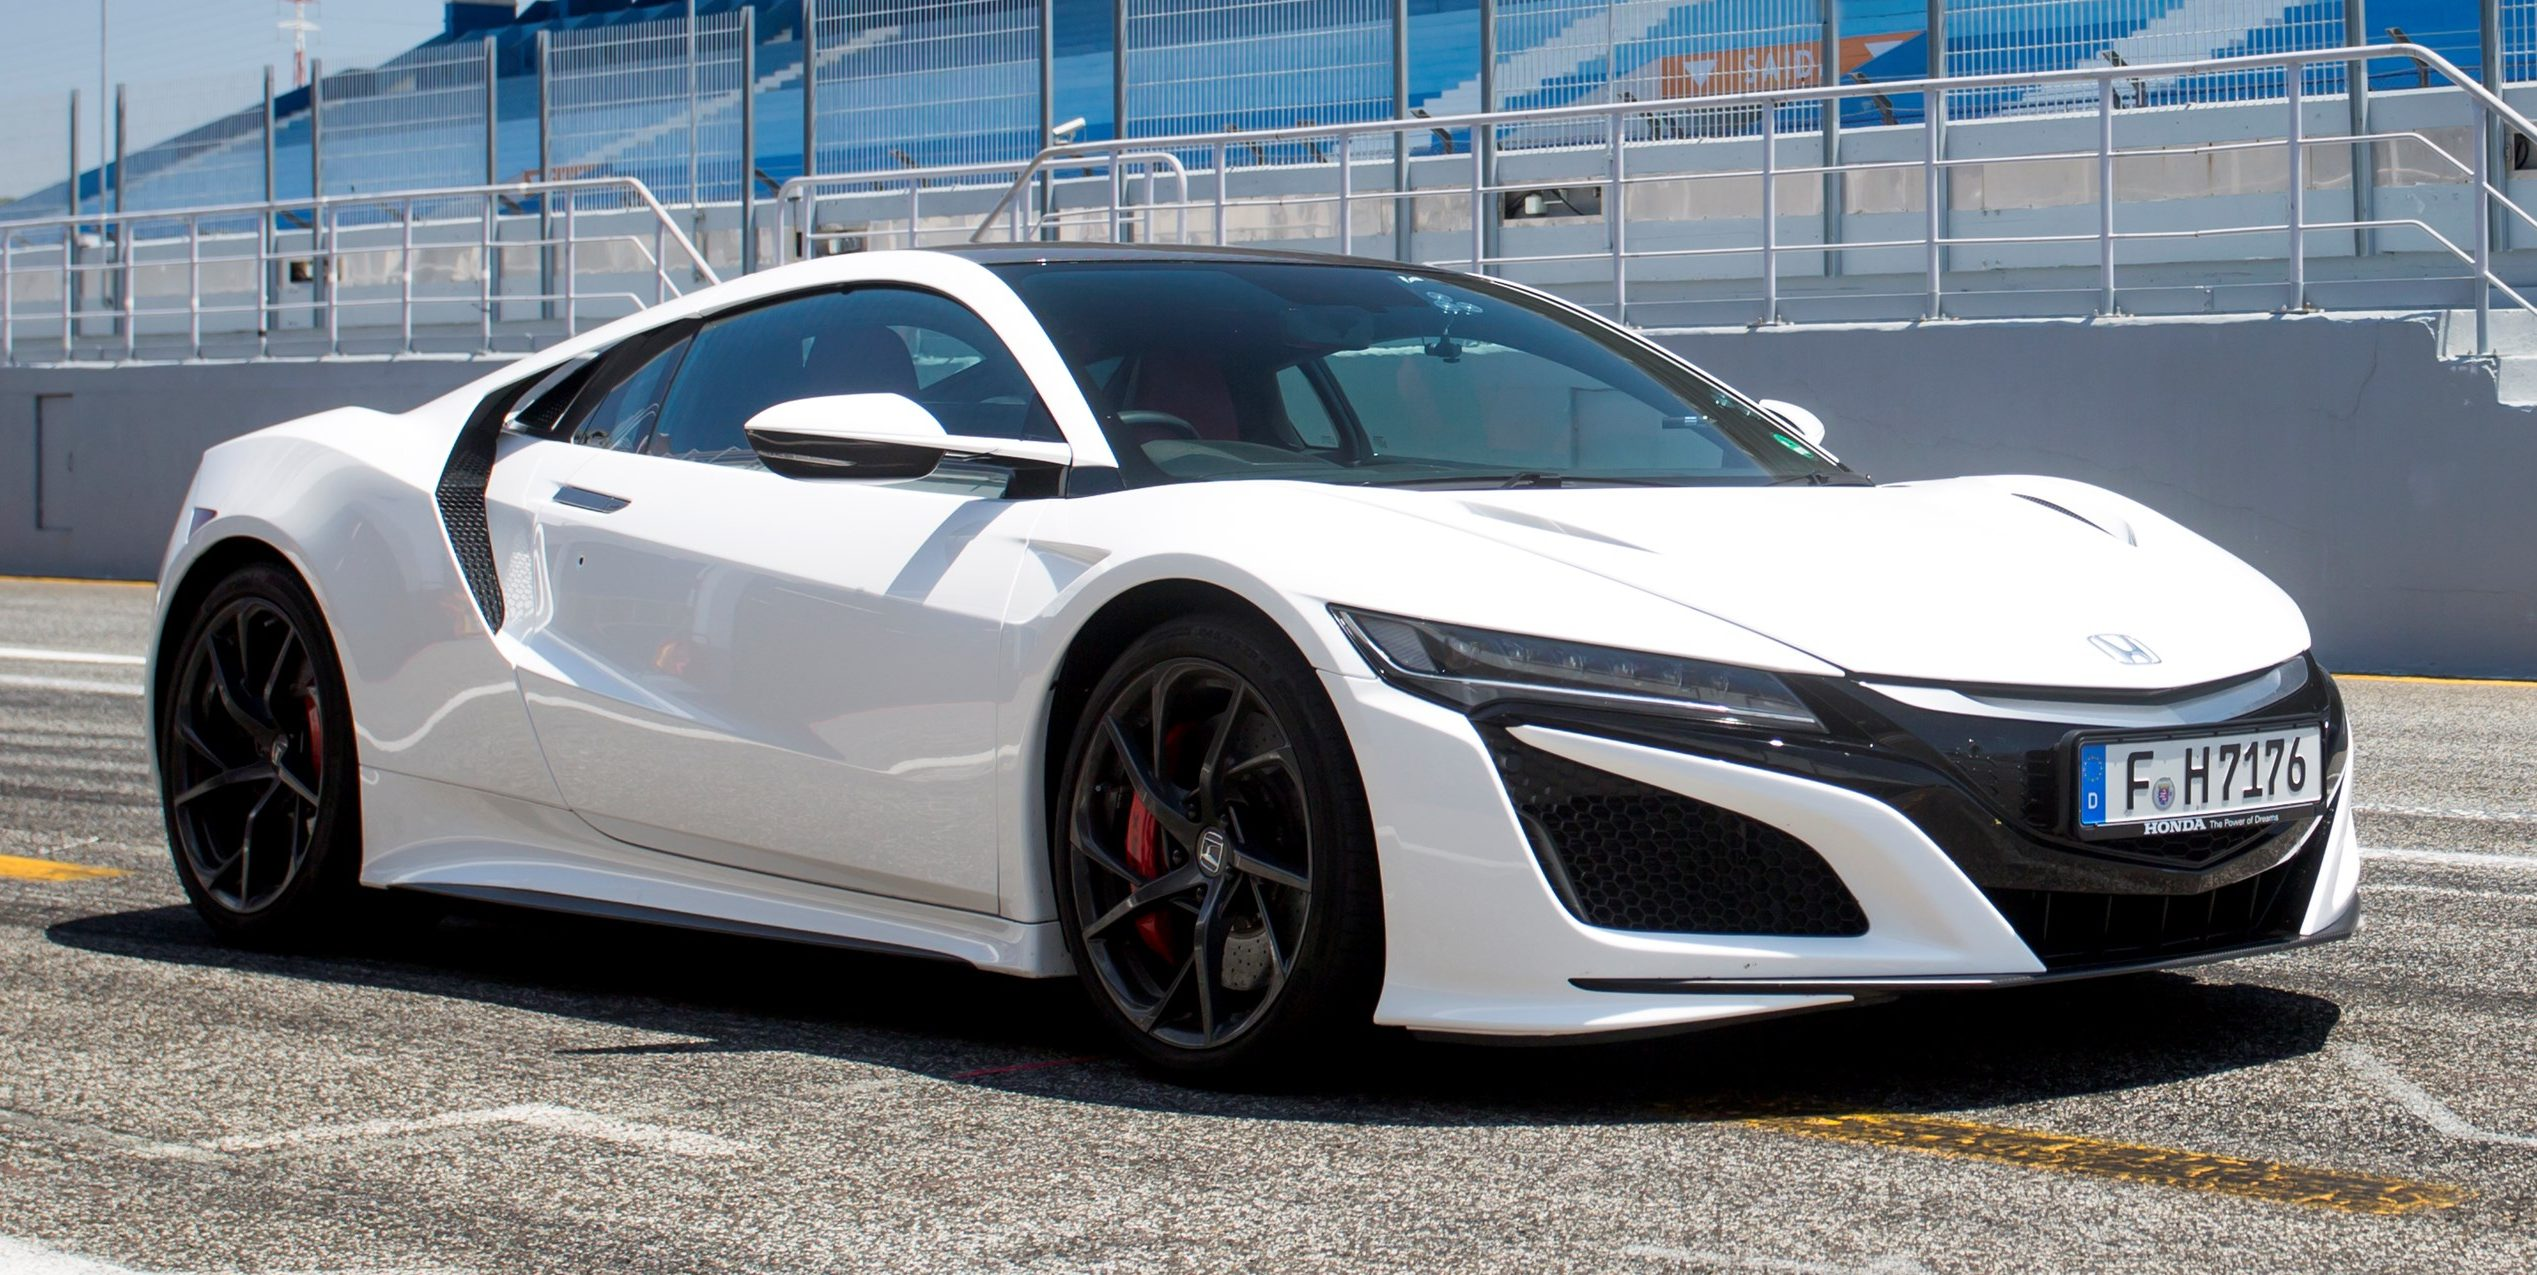 GALLERY: New Honda NSX makes its European debut Image 515764